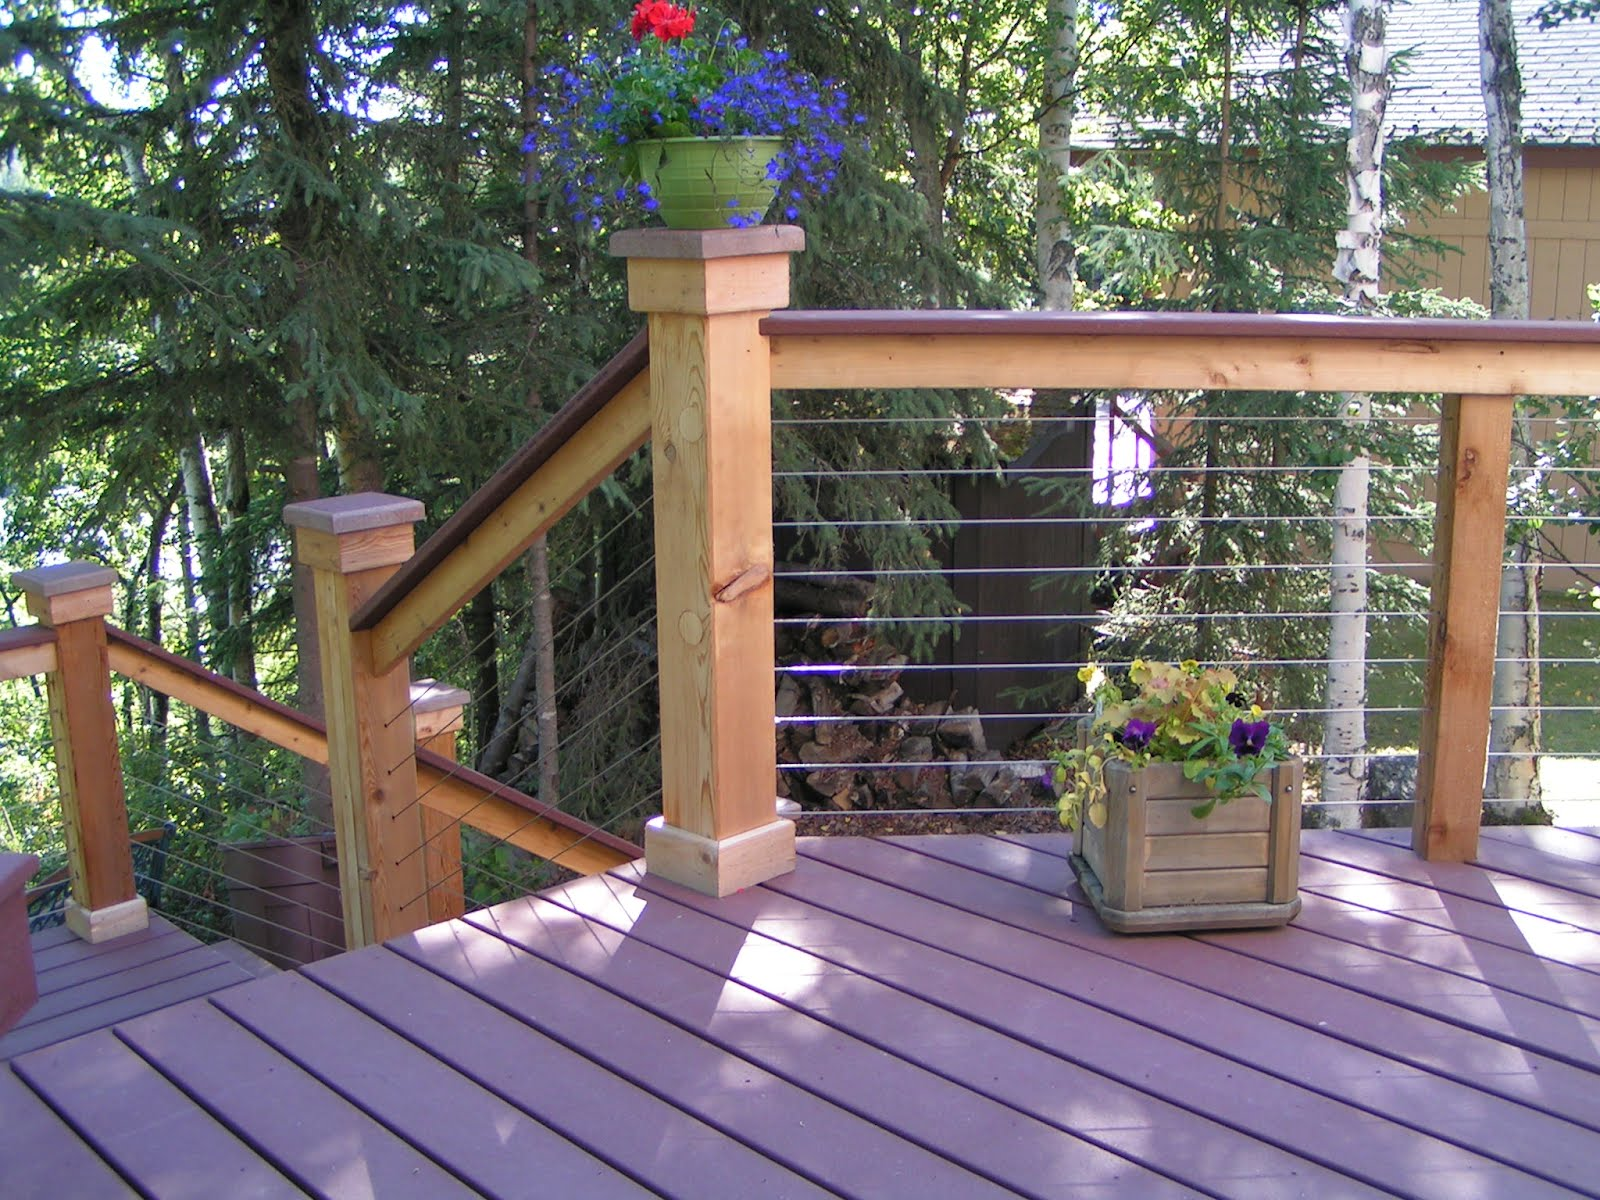 Deck Railings Ideas And Options Outdoor Design | Tattoo ...